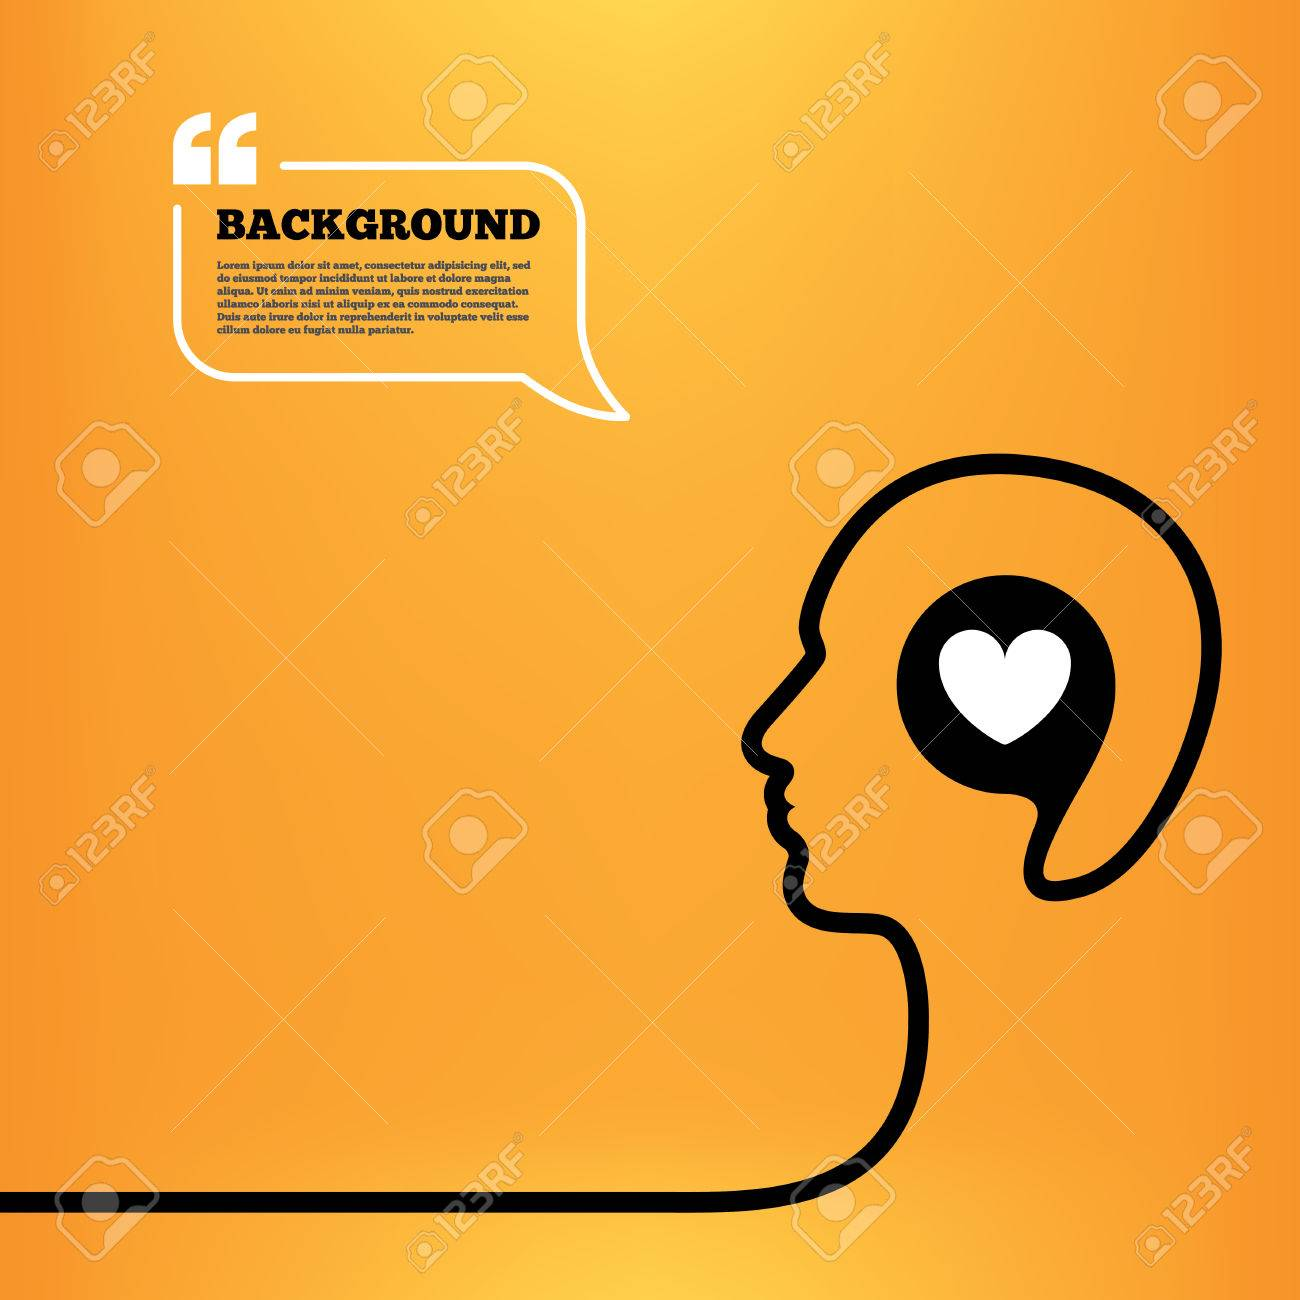 Head think with speech bubble Heart sign icon Love symbol Orange background with